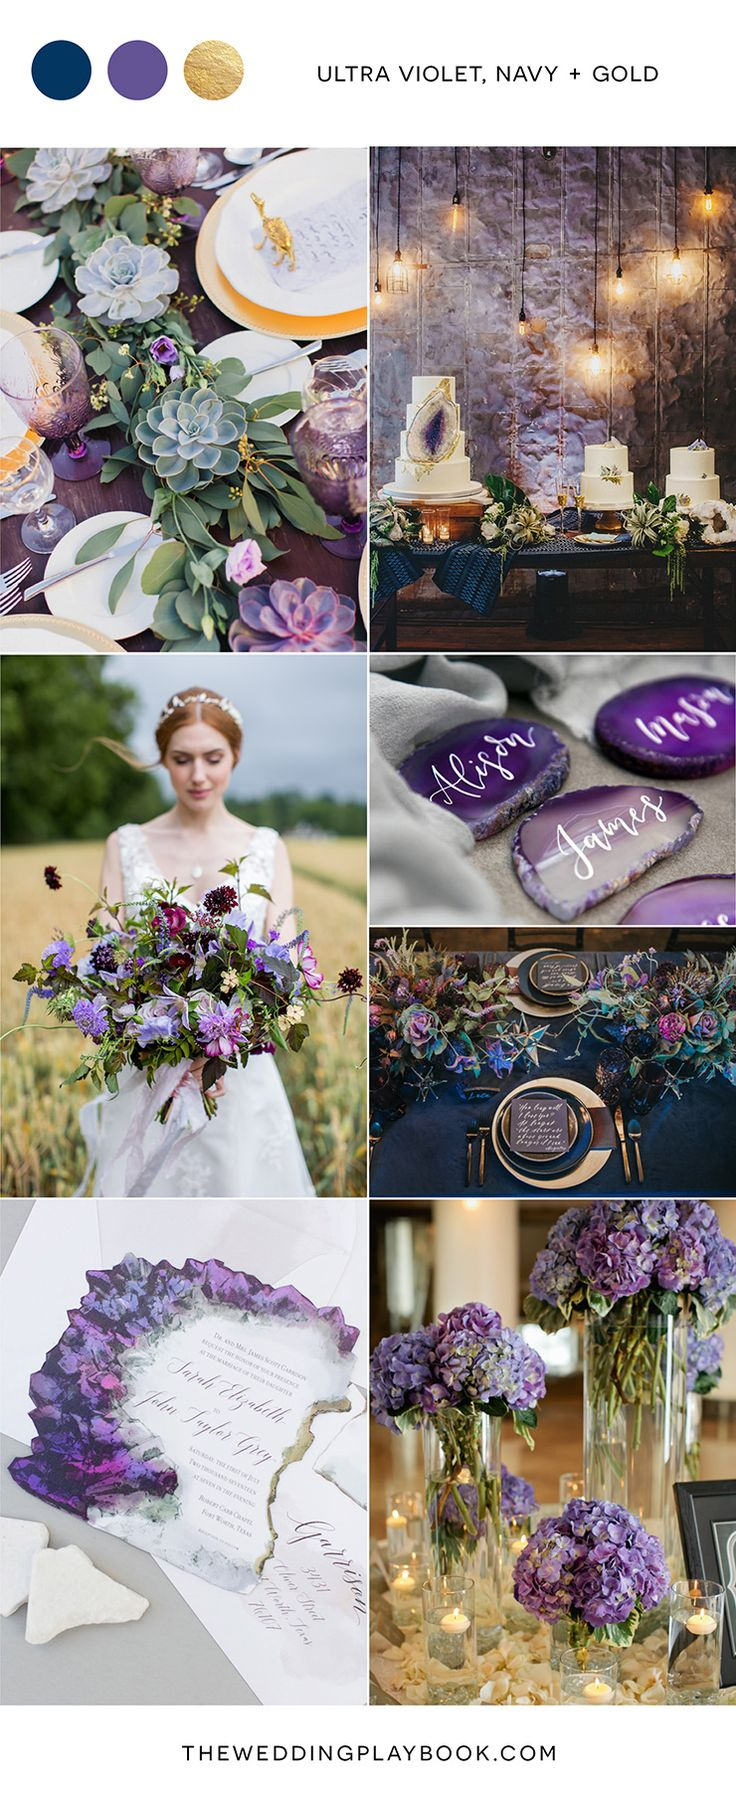 Ultra Violet, navy and gold wedding inspiration | The Wedding Playbook